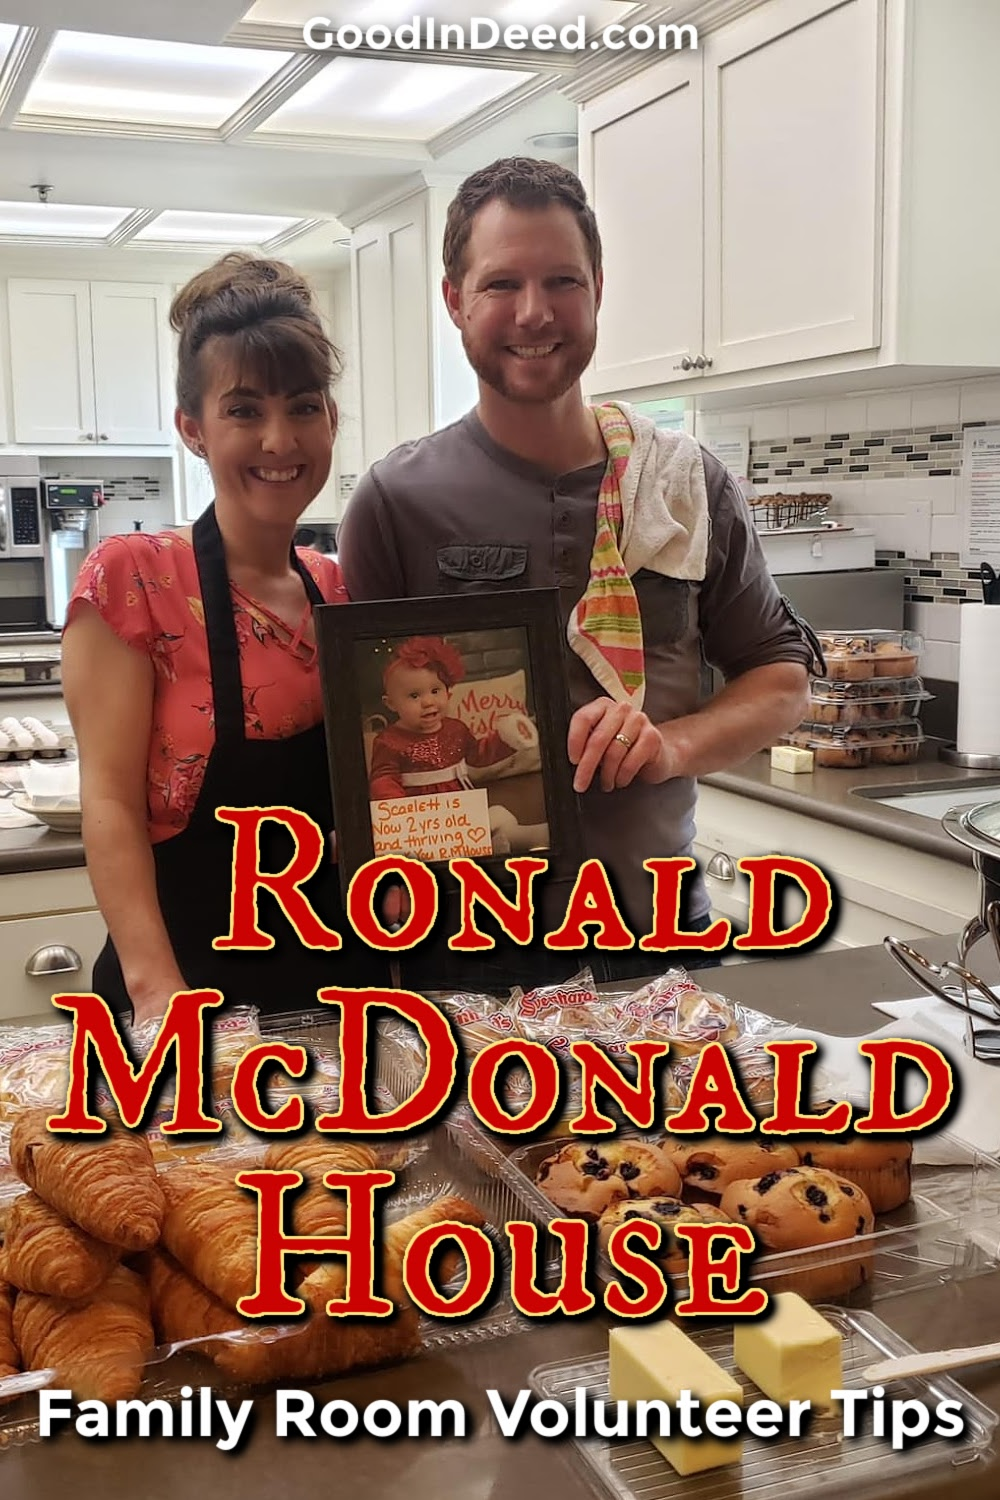 Put Ronald McDonald House Family Room volunteer tips to good use for your local community in Mission Viejo and Orange.